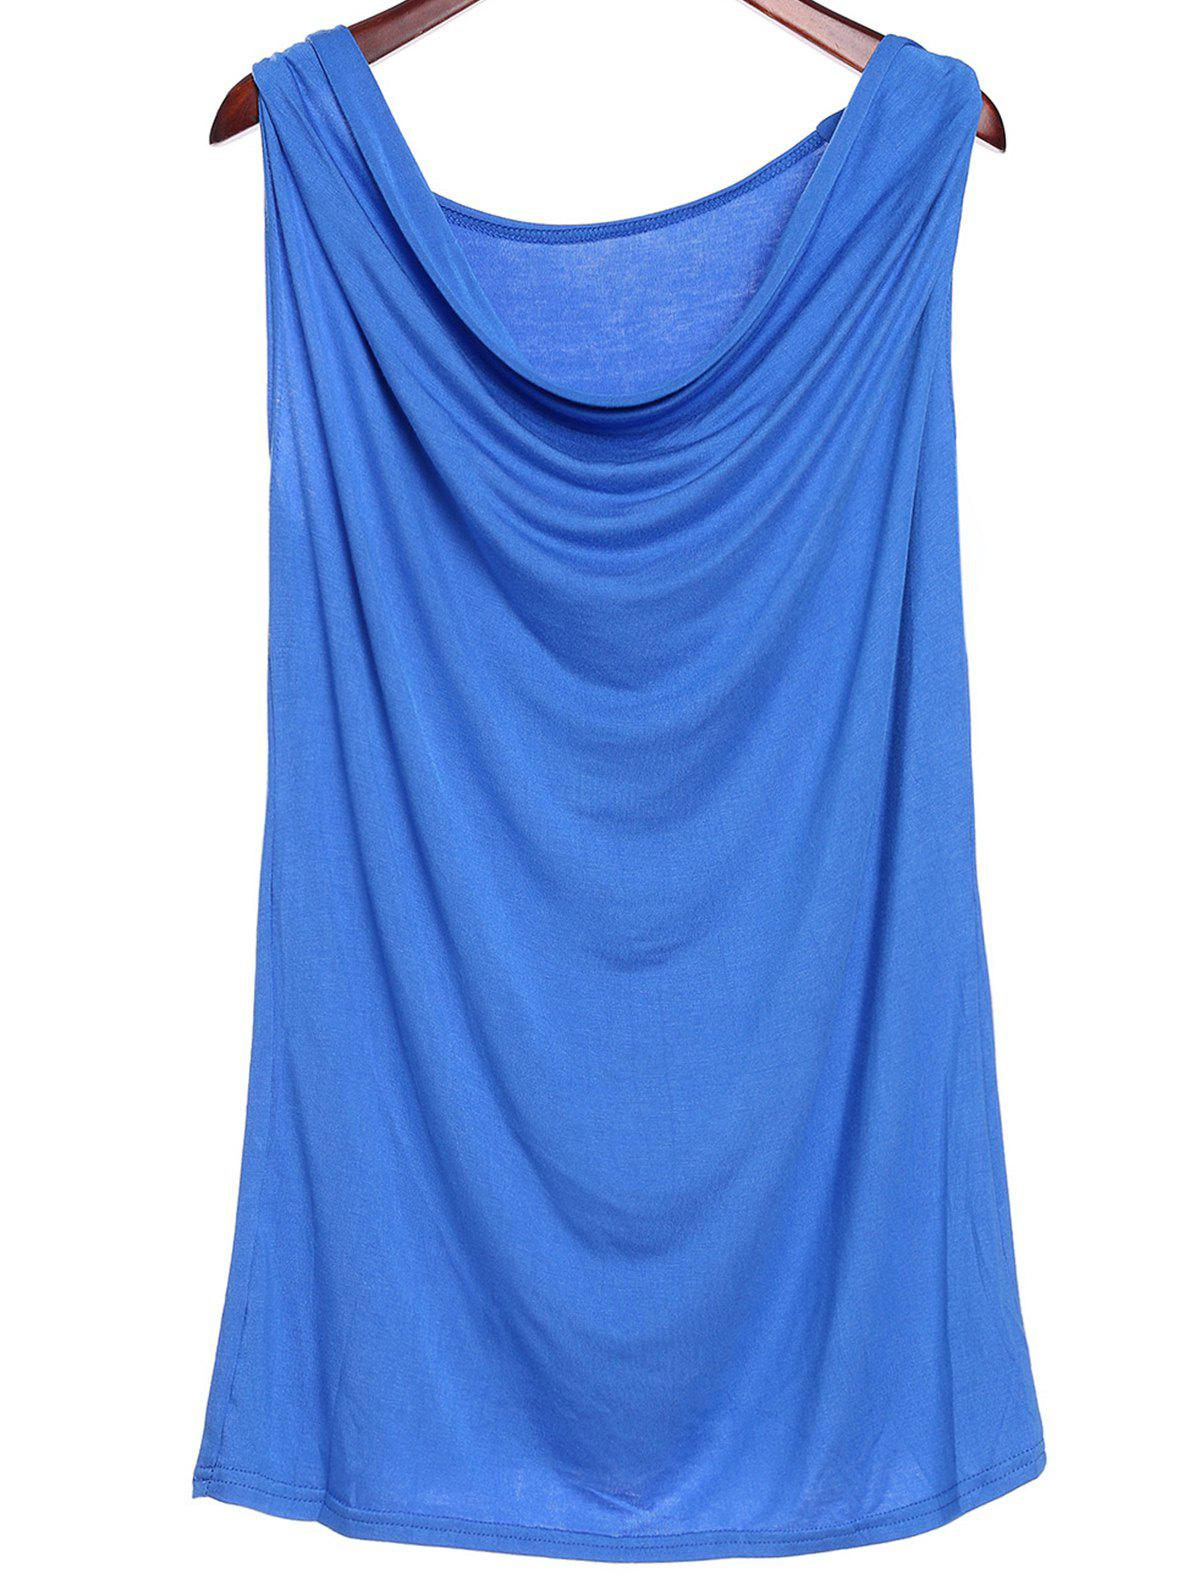 Stylish Sleeveless Solid Color Low Cut Women's Tank Top - BLUE XL